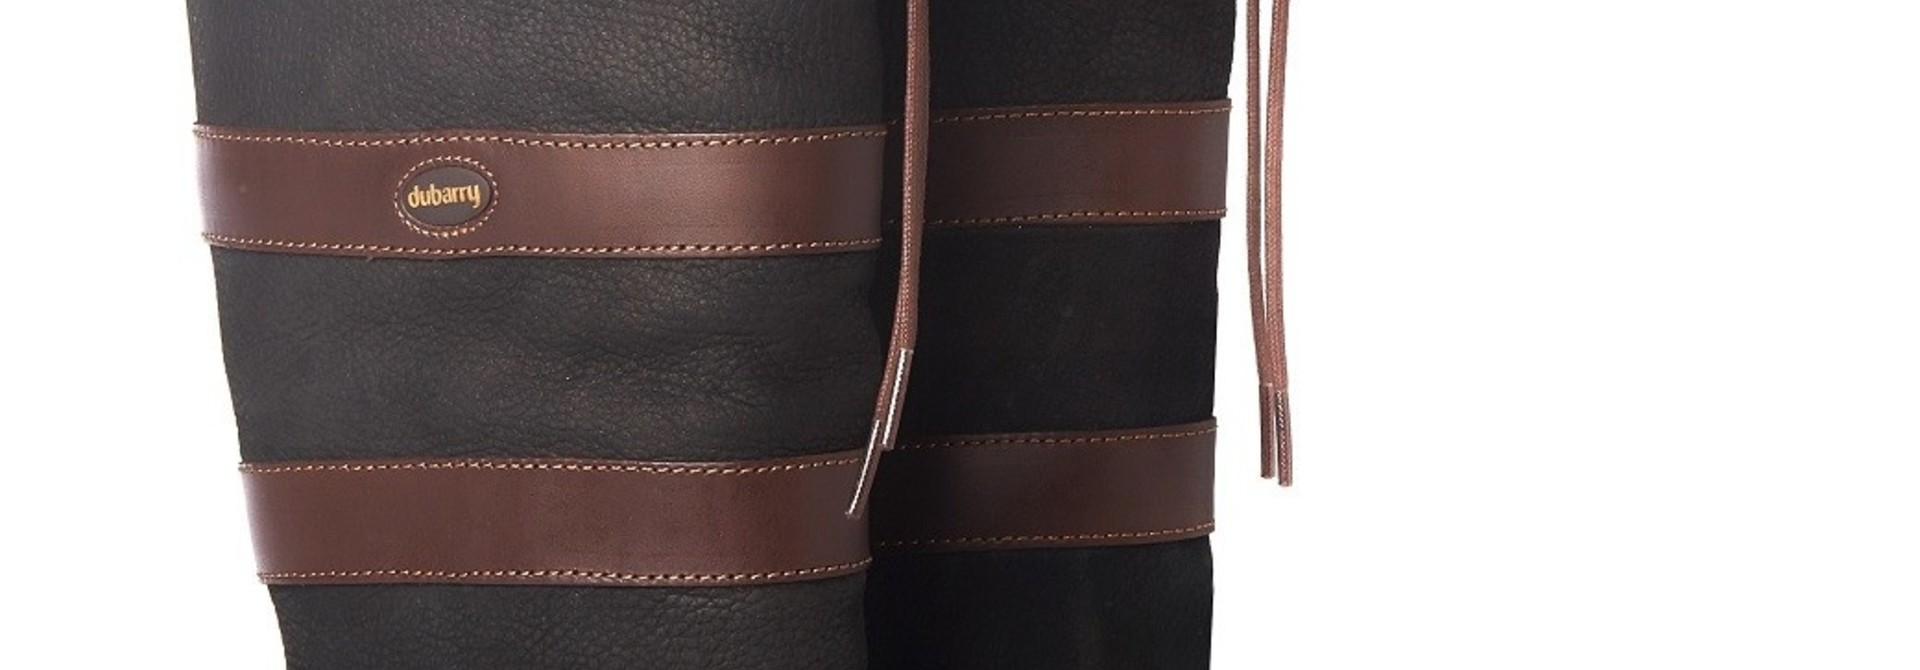 Dubarry Galway Extrafit™- Black/Brown